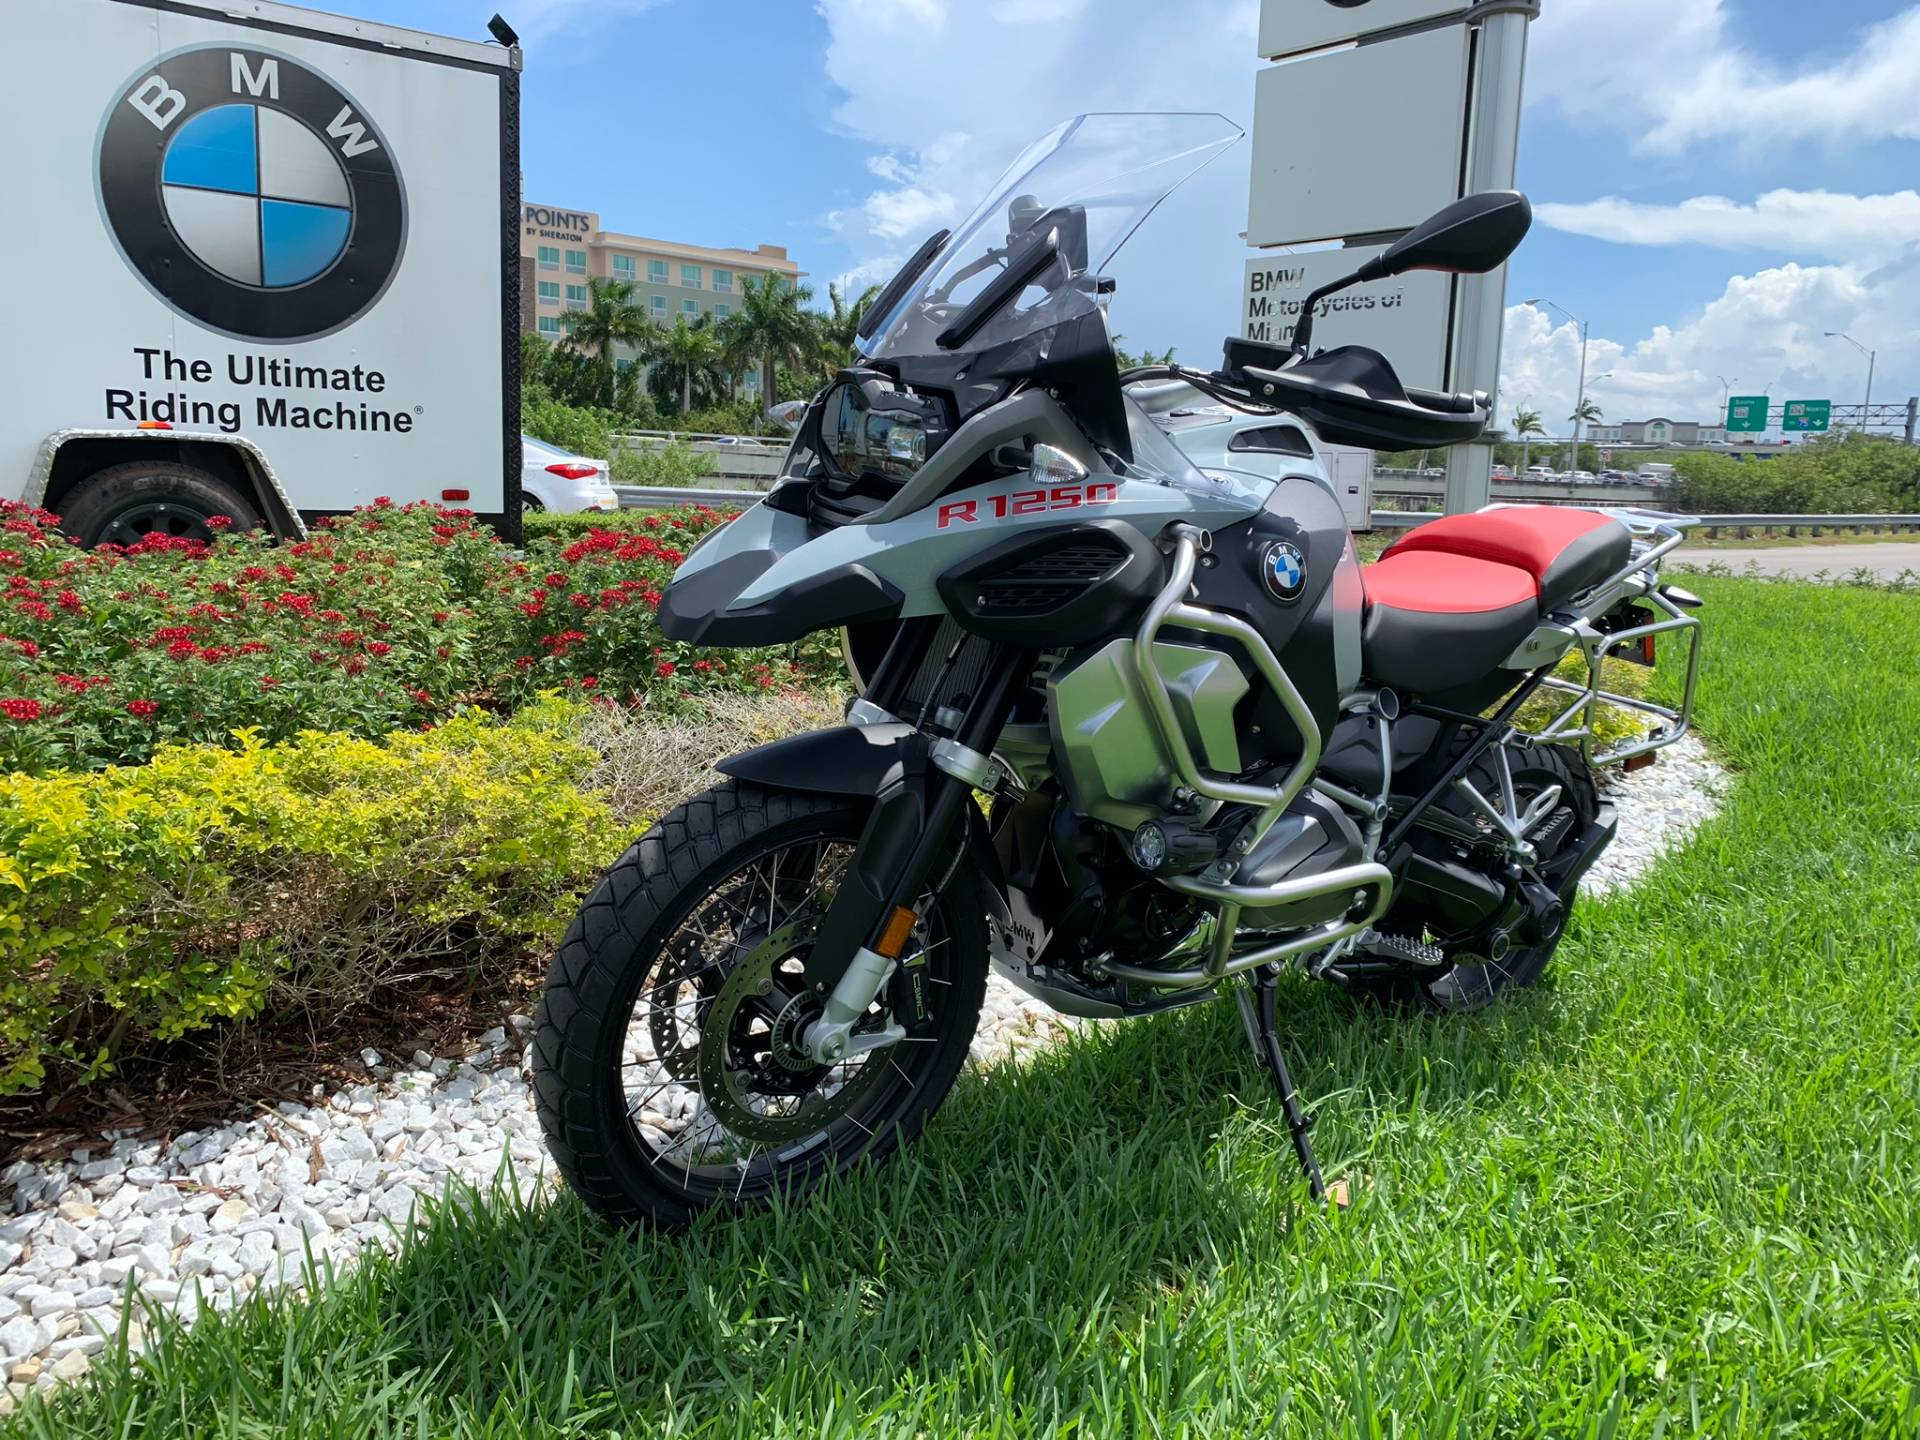 New 2019 BMW R 1250 GSA for sale, New BMW for sale R 1250GSA, New BMW Motorcycle R1250GSA for sale, new BMW 1250GS Adventure, R1250GS Adventure, Adventure. BMW Motorcycles of Miami, Motorcycles of Miami, Motorcycles Miami, New Motorcycles, Used Motorcycles, pre-owned. #BMWMotorcyclesOfMiami #Motorcy - Photo 5